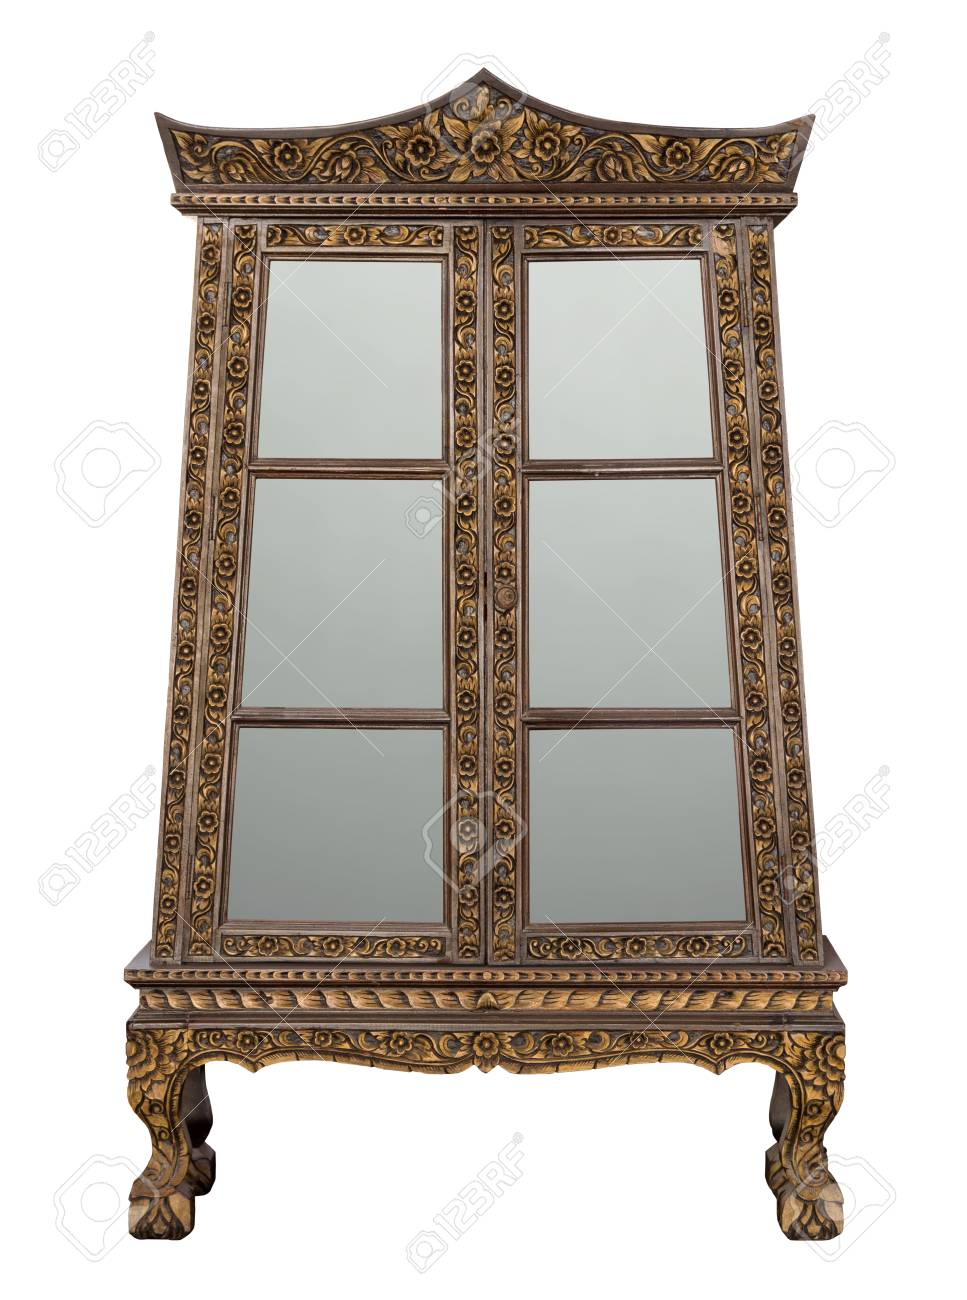 Antique Wooden Cabinet With Glass Doors Isolated On White With